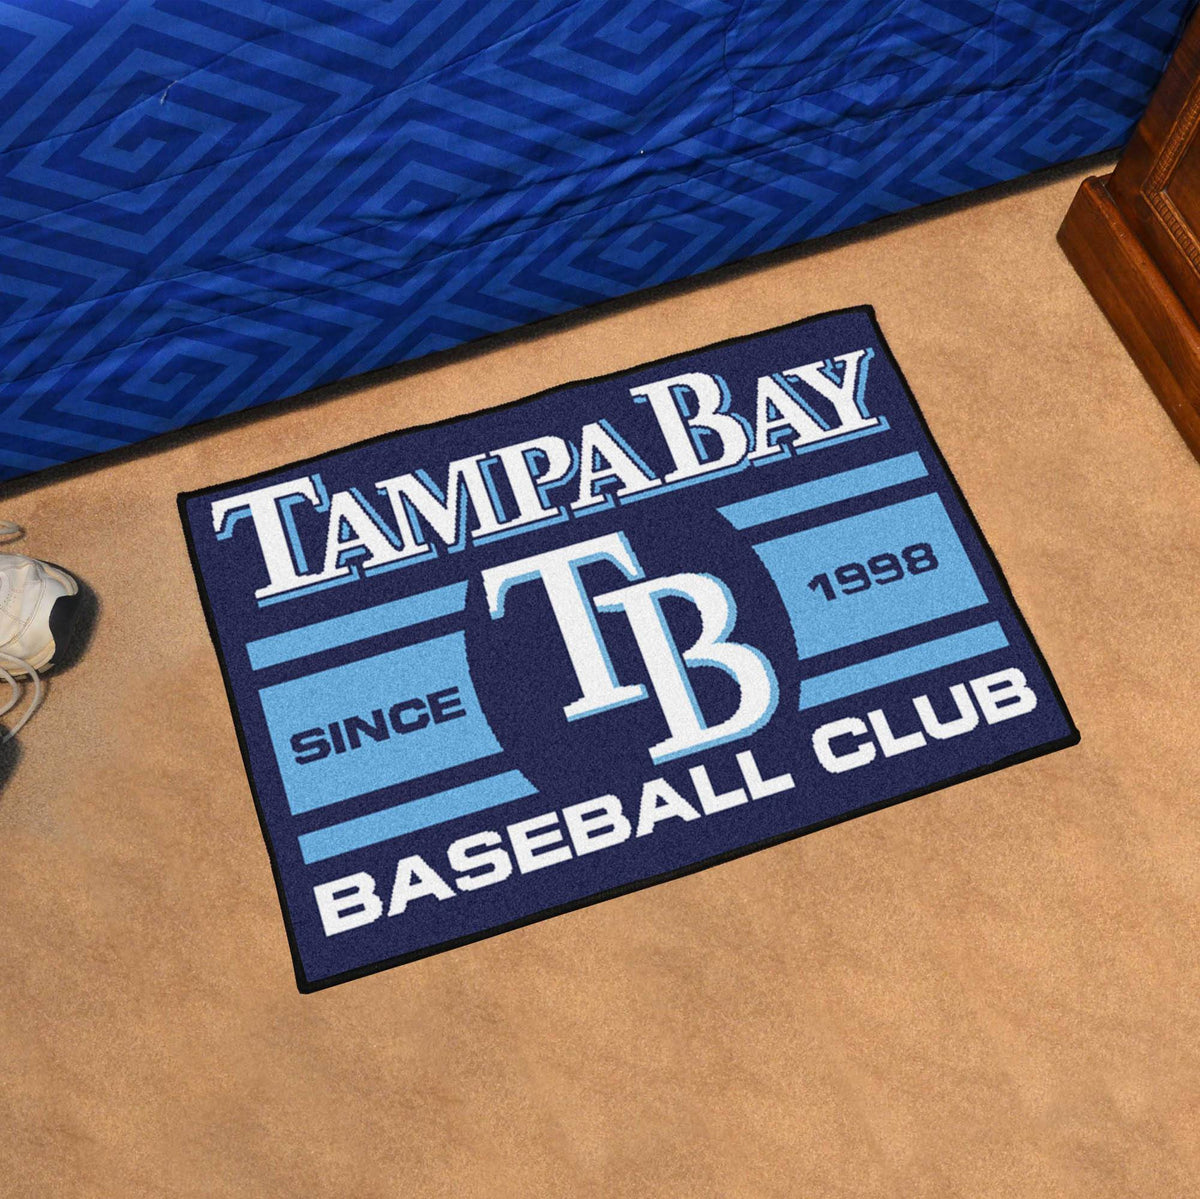 MLB - Uniform Starter Mat MLB Mats, Rectangular Mats, Uniform Starter Mat, MLB, Home Fan Mats Tampa Bay Rays